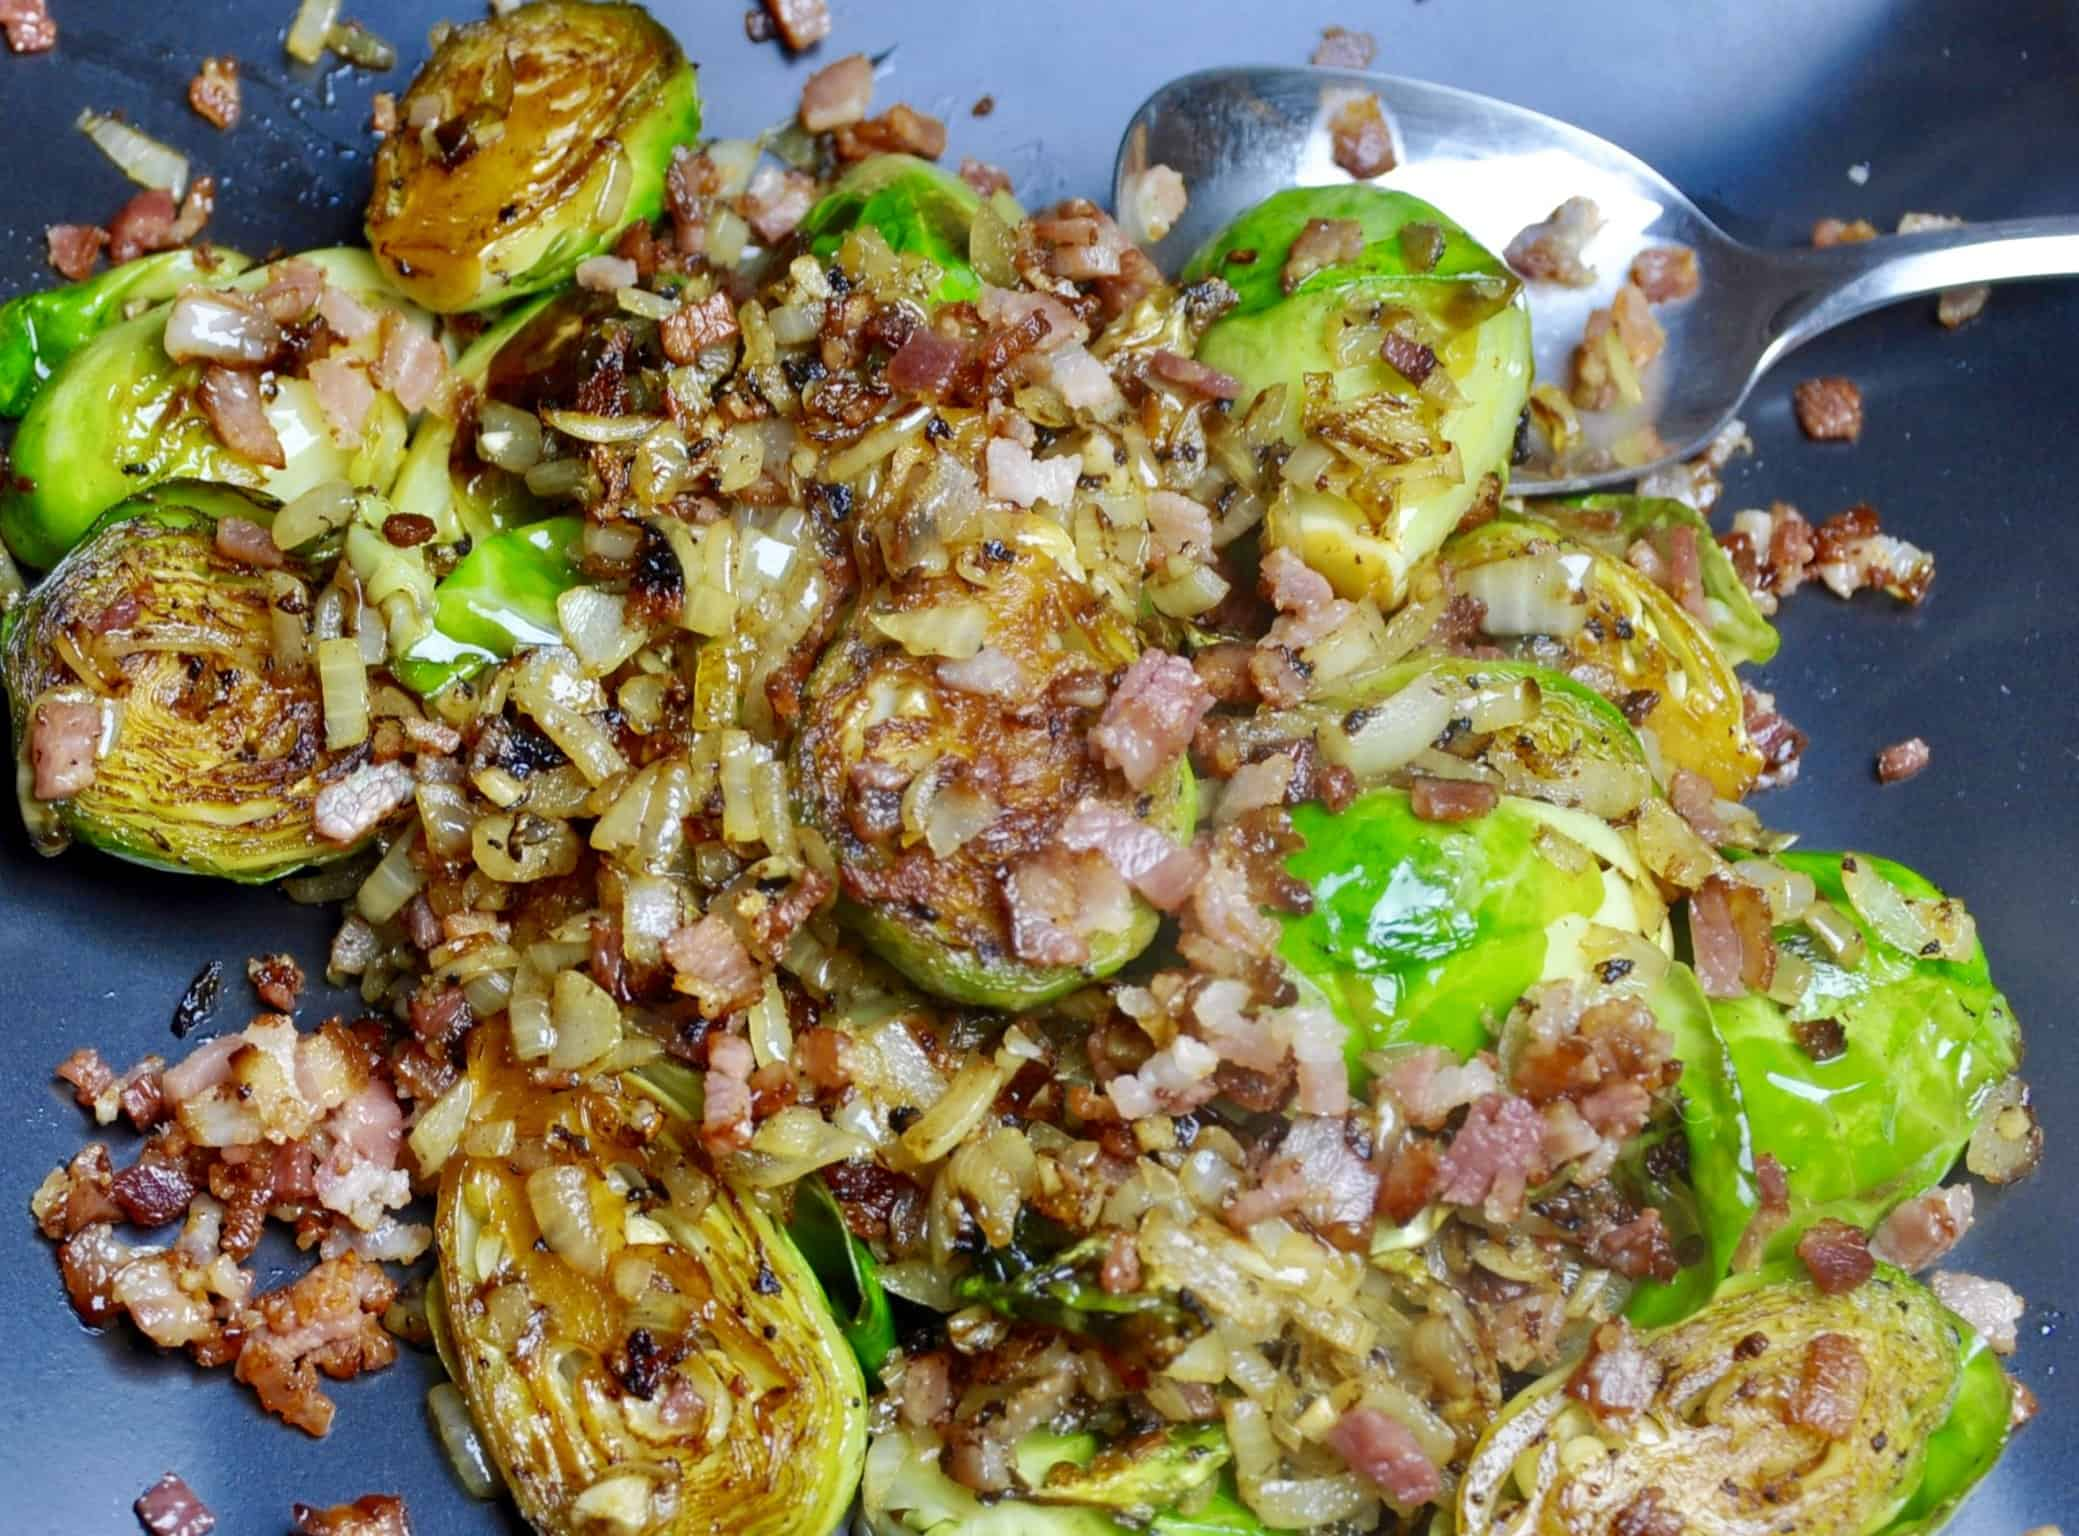 brussel sprouts sauteer with bacon, onion and garlic cooked in a frypan with a silver spoon in the pan